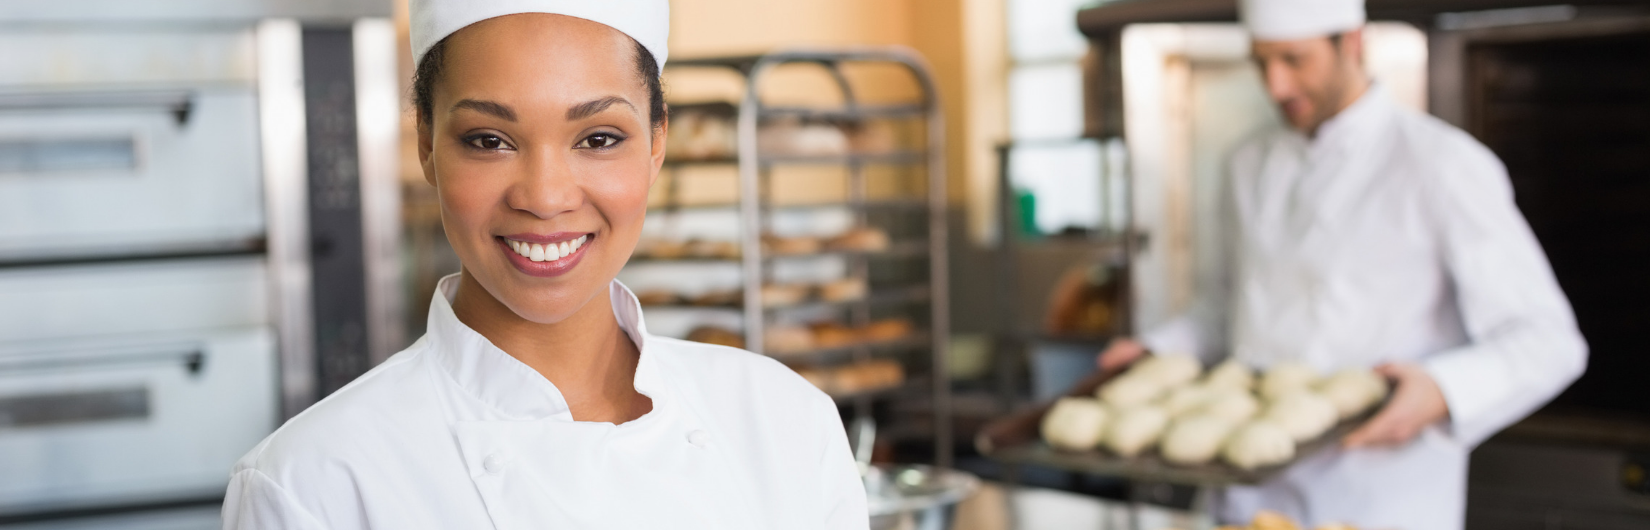 Explore Our New Program: Baking and Pastry Arts